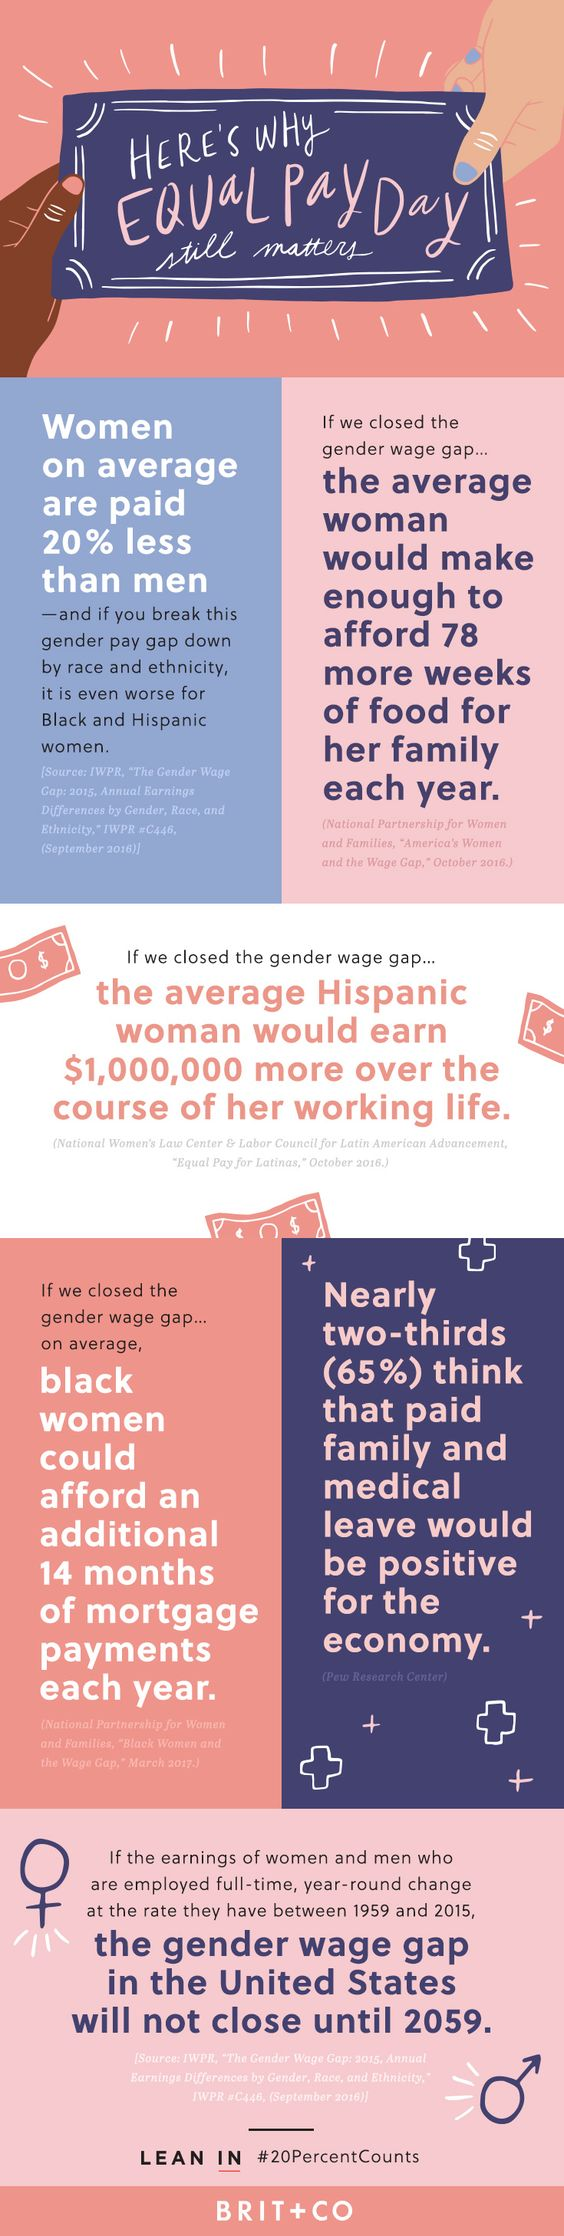 Here S Why Equalpay Matters Live In Illinois Click This Pin To Support A Law That Would Help Close The Wage Gap Gender Pay Gap Equality Feminism